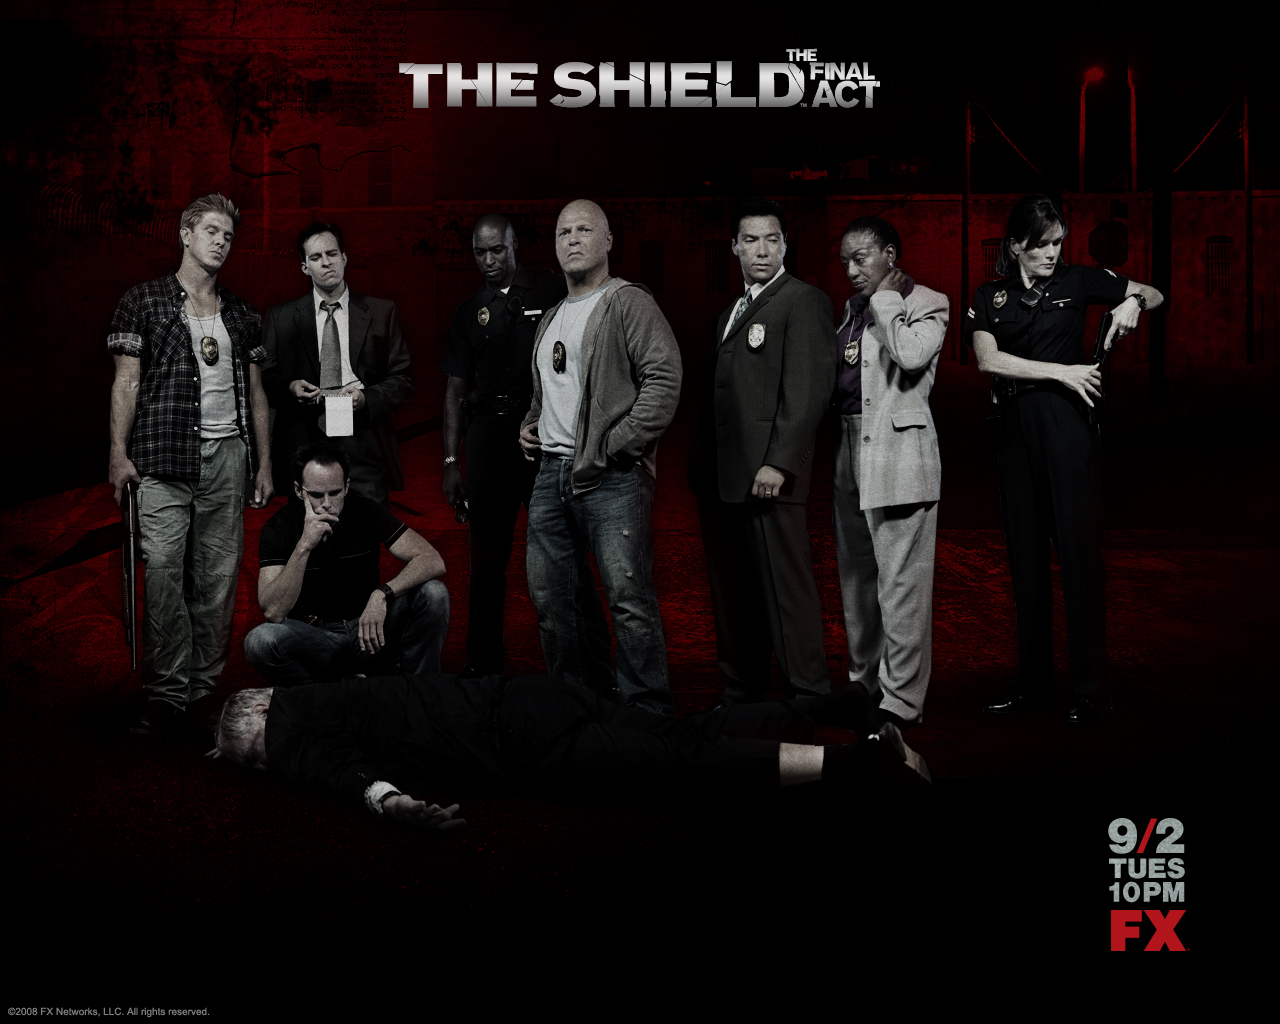 THE SHIELD 2002 2008 Demons Resume 1280x1024